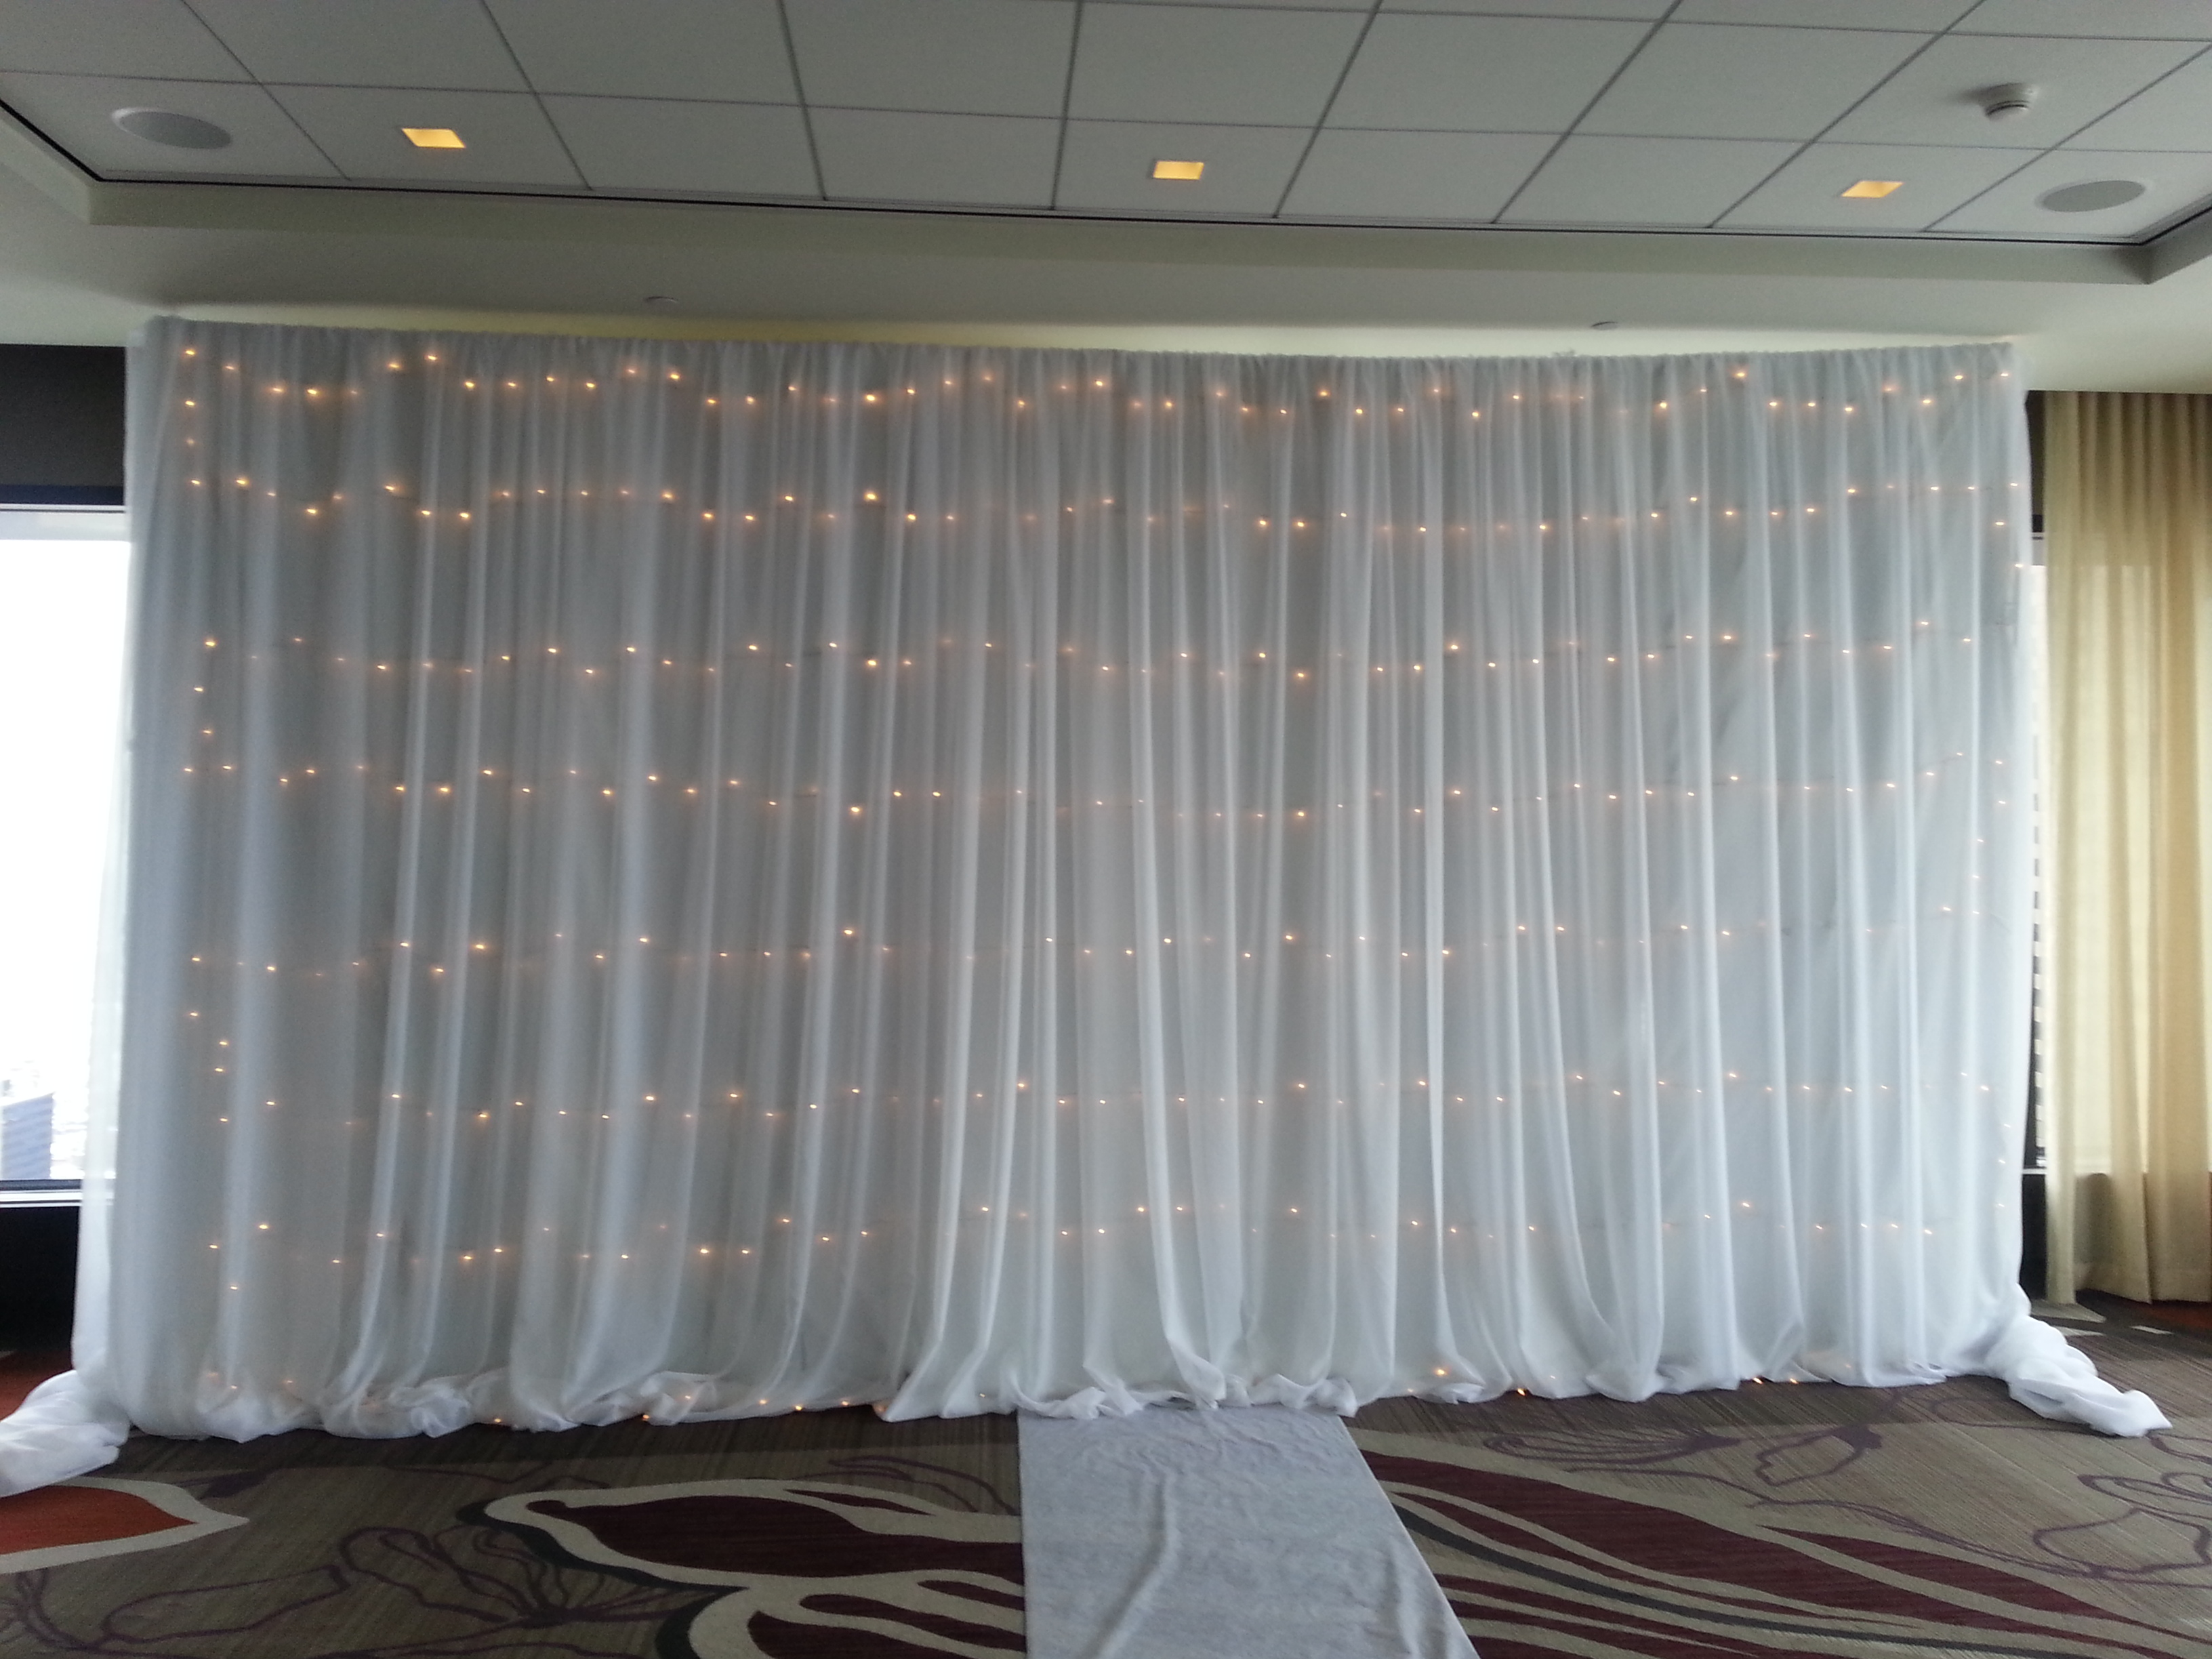 drapes and brilliant diego san draping backdrop pipe rental lighting event